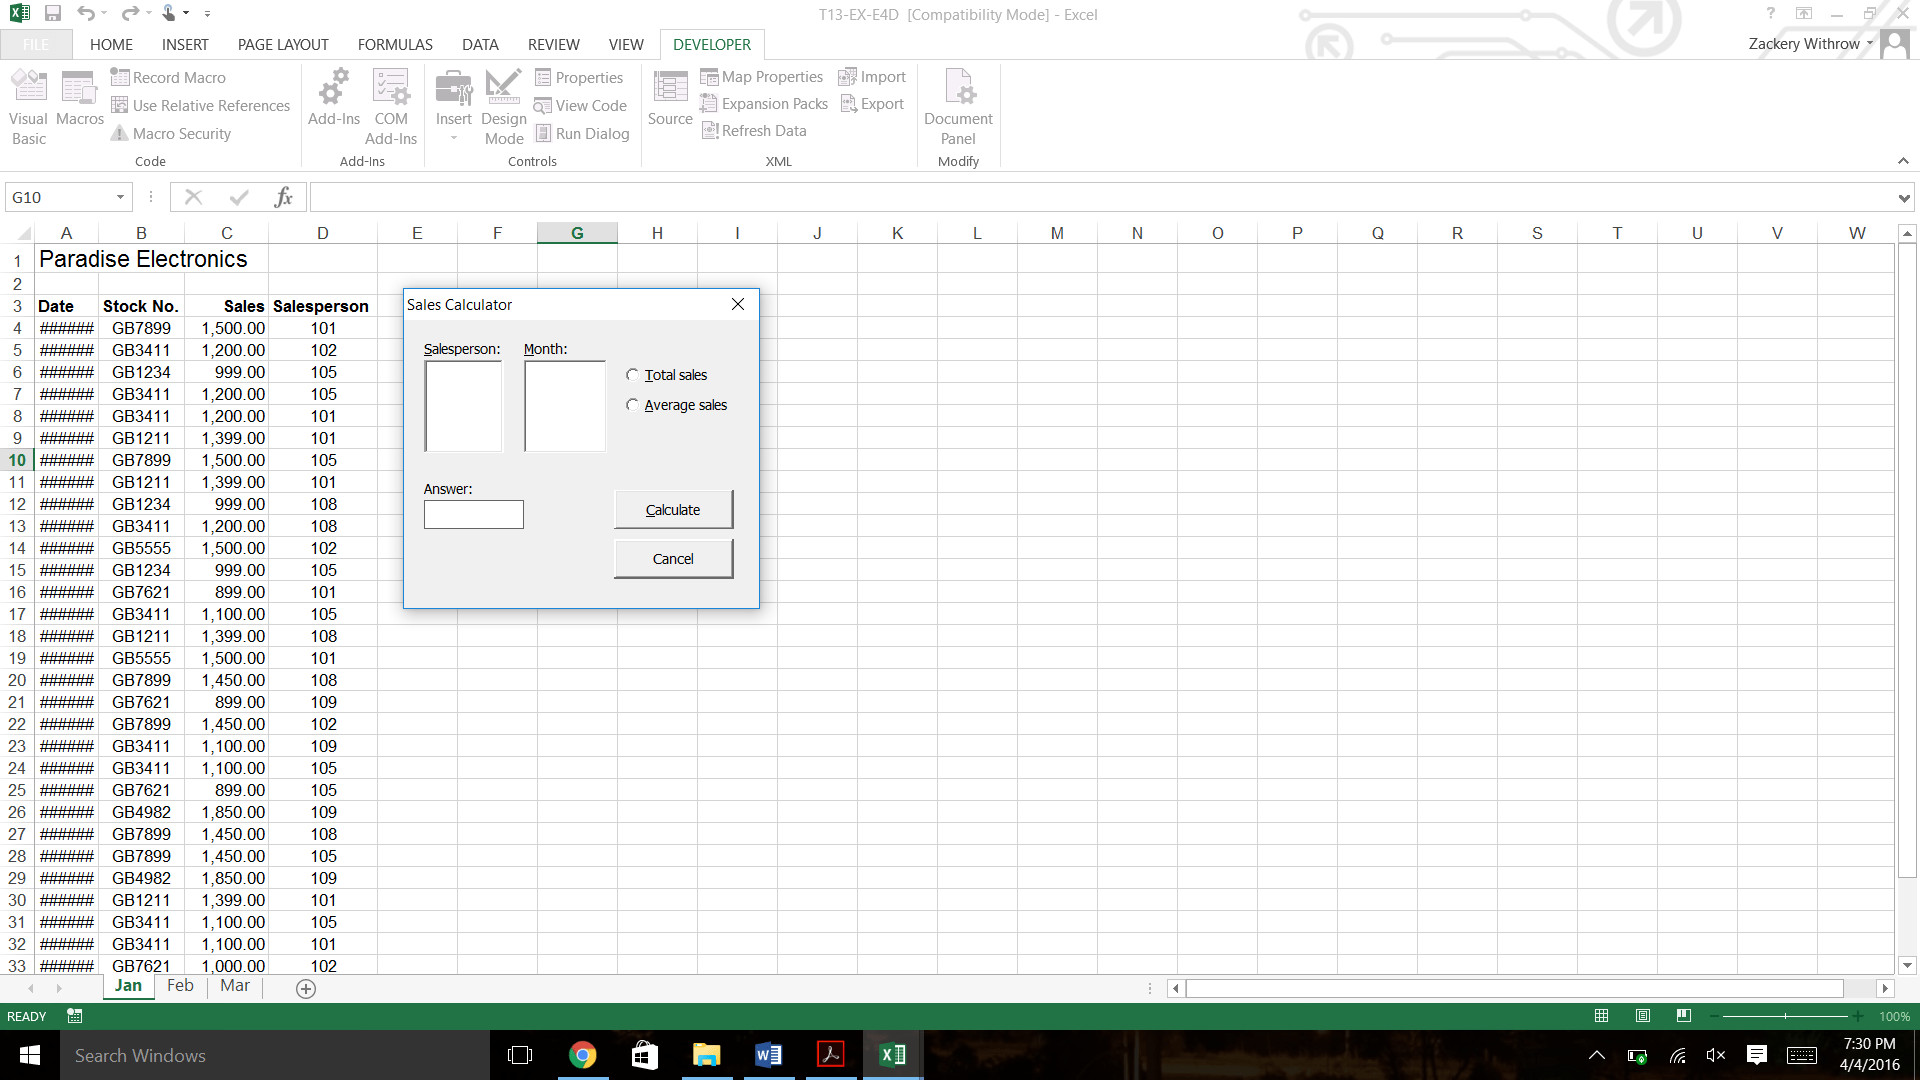 Worksheet Change In Range